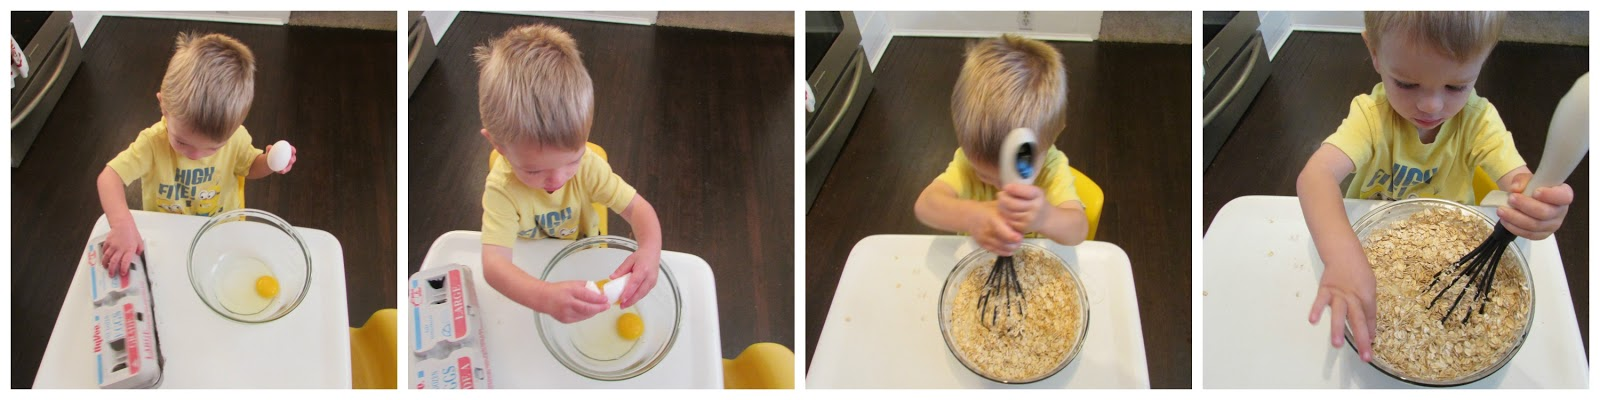 Step by step images of small child putting together baked oatmeal batter from cracking eggs to stirring oatmeal.